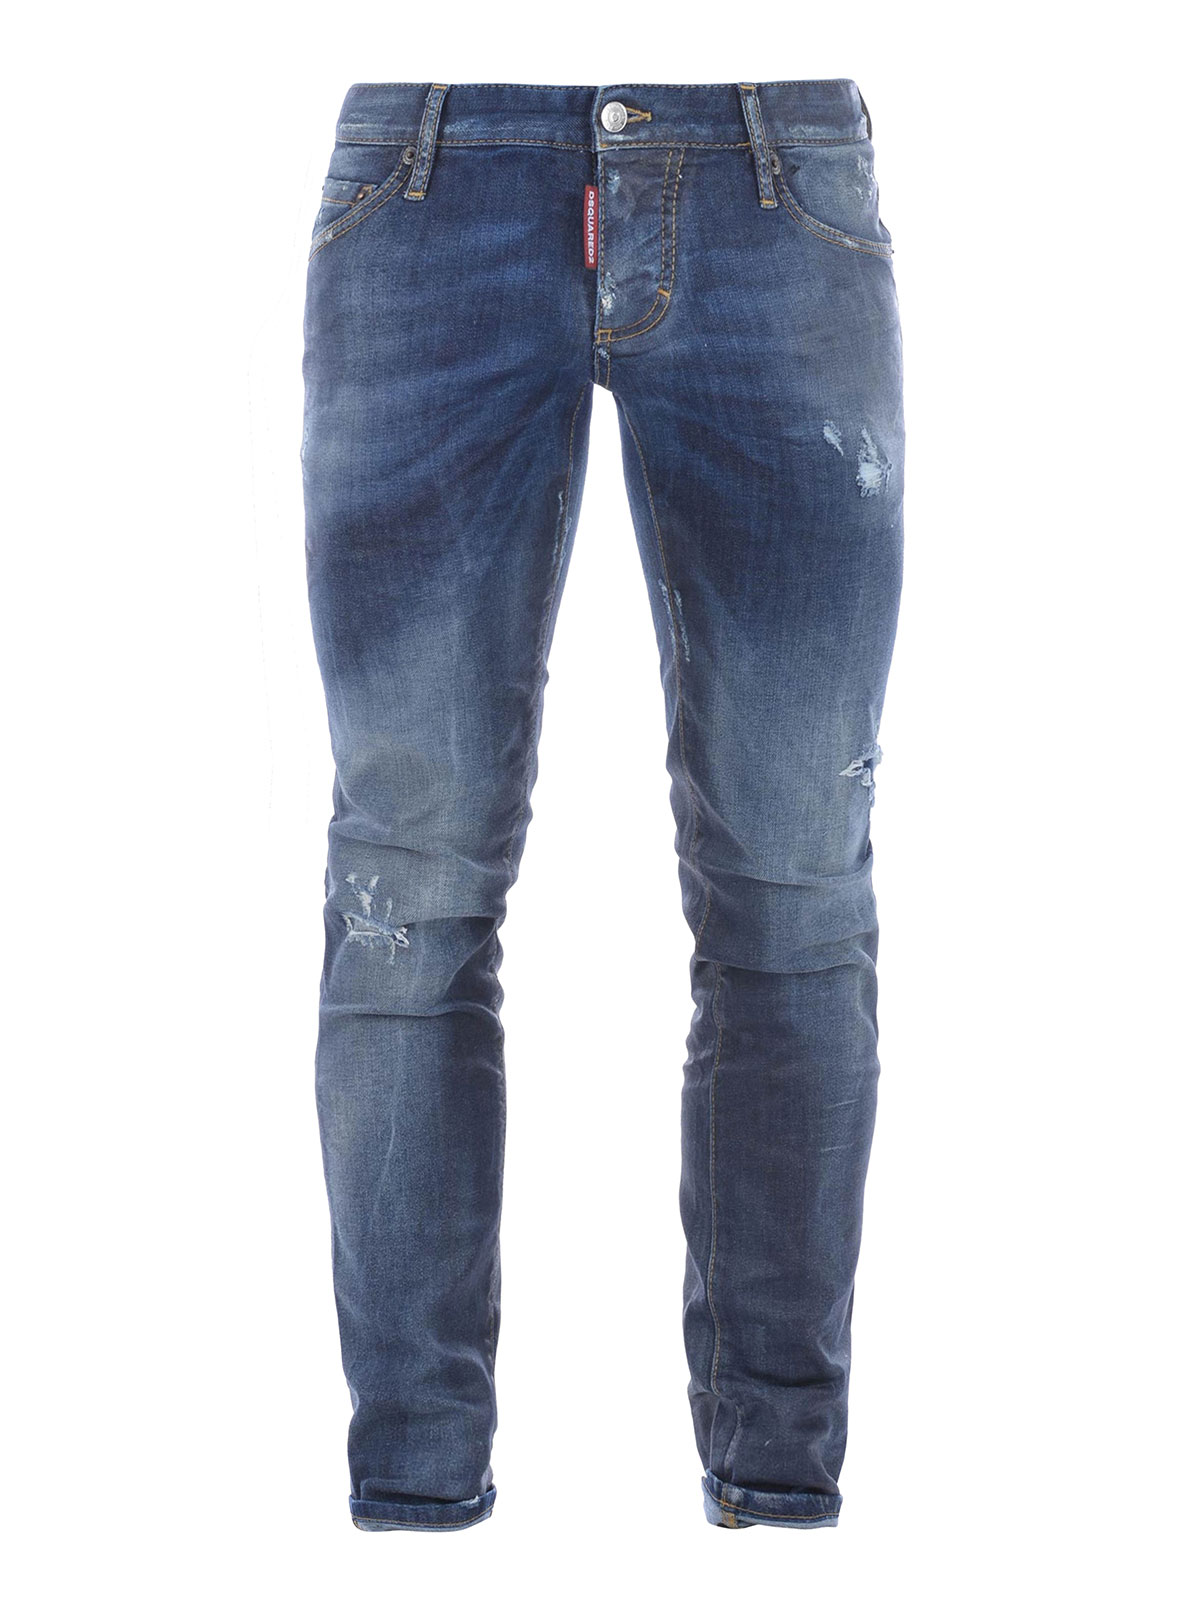 crotch packo low rise denim jeans by dsquared2 skinny jeans ikrix. Black Bedroom Furniture Sets. Home Design Ideas